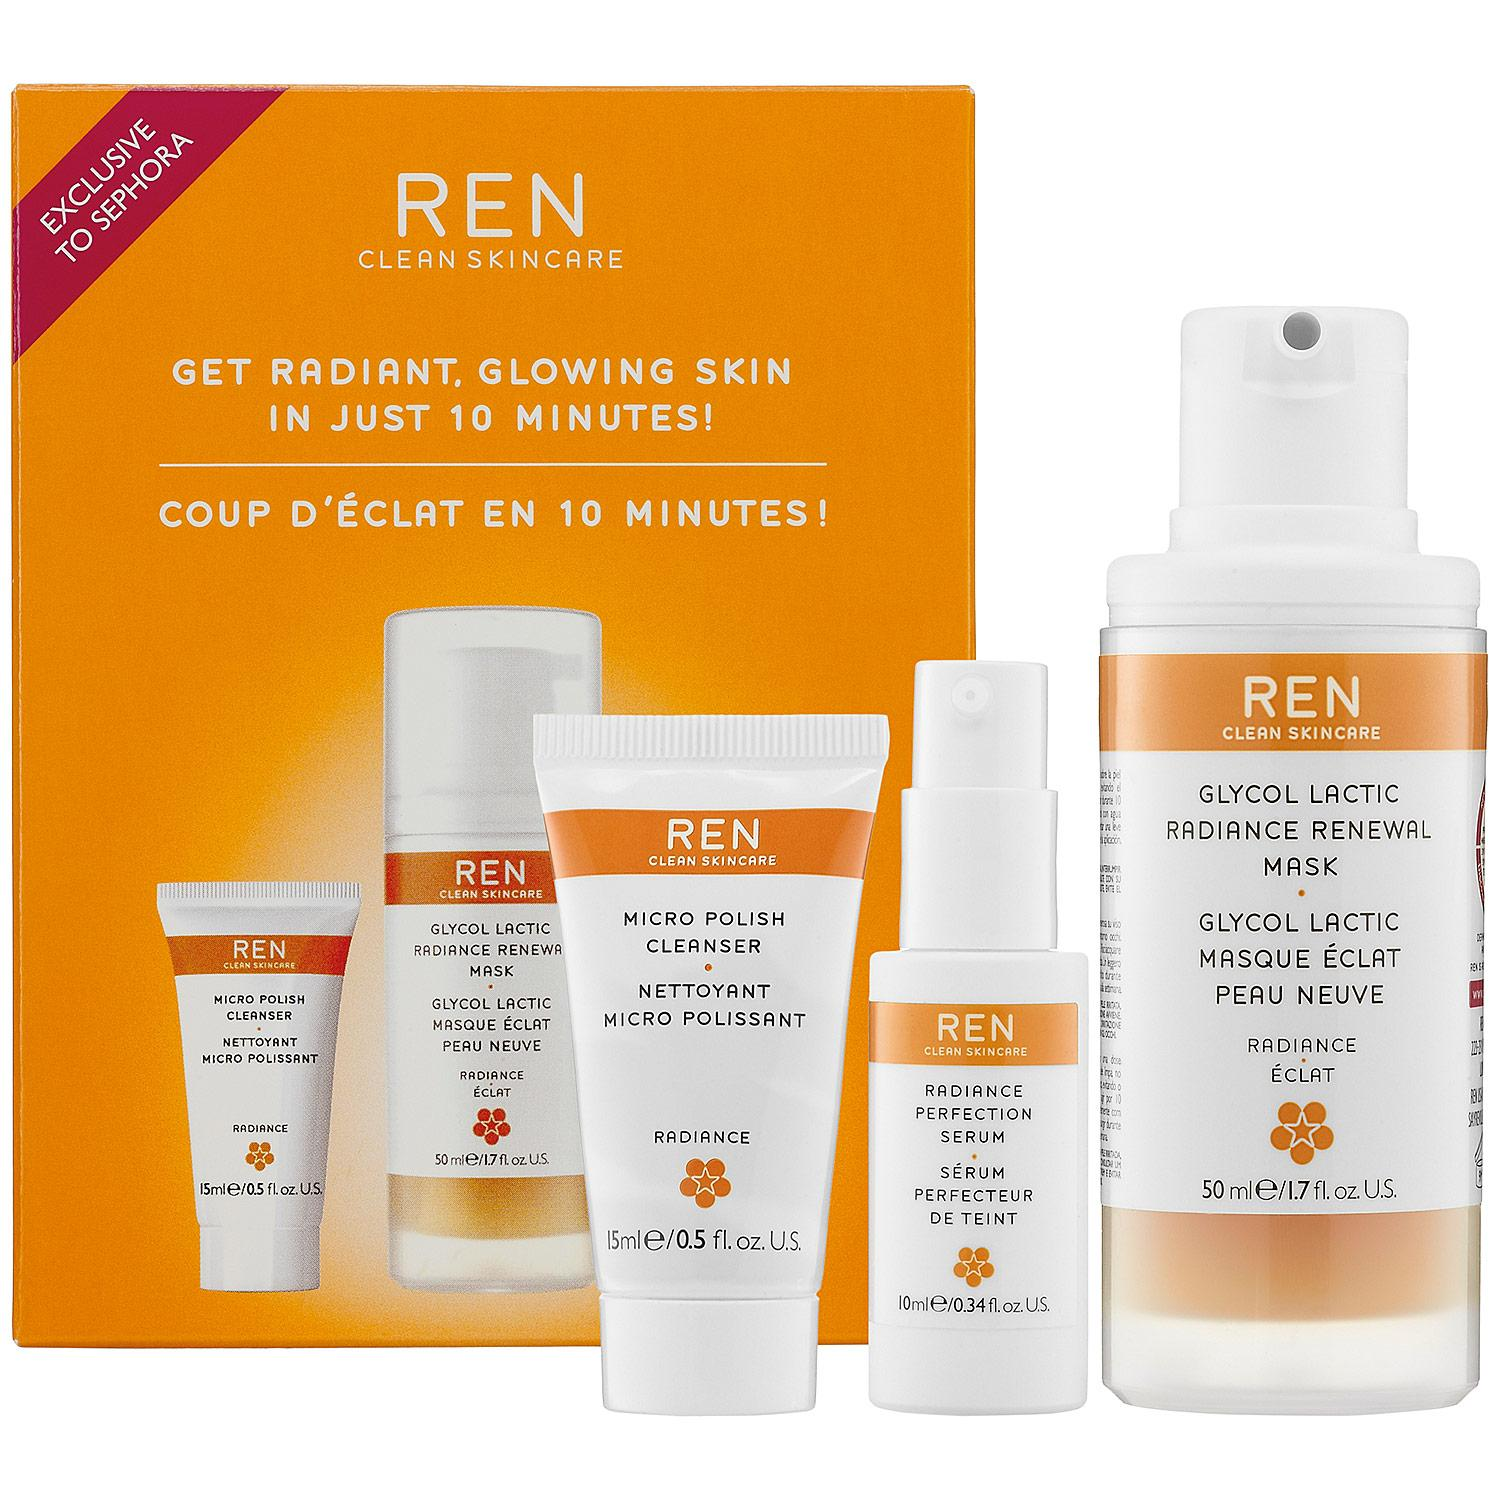 Get Radiant, Glowing Skin In Just 10 Minutes! Kit